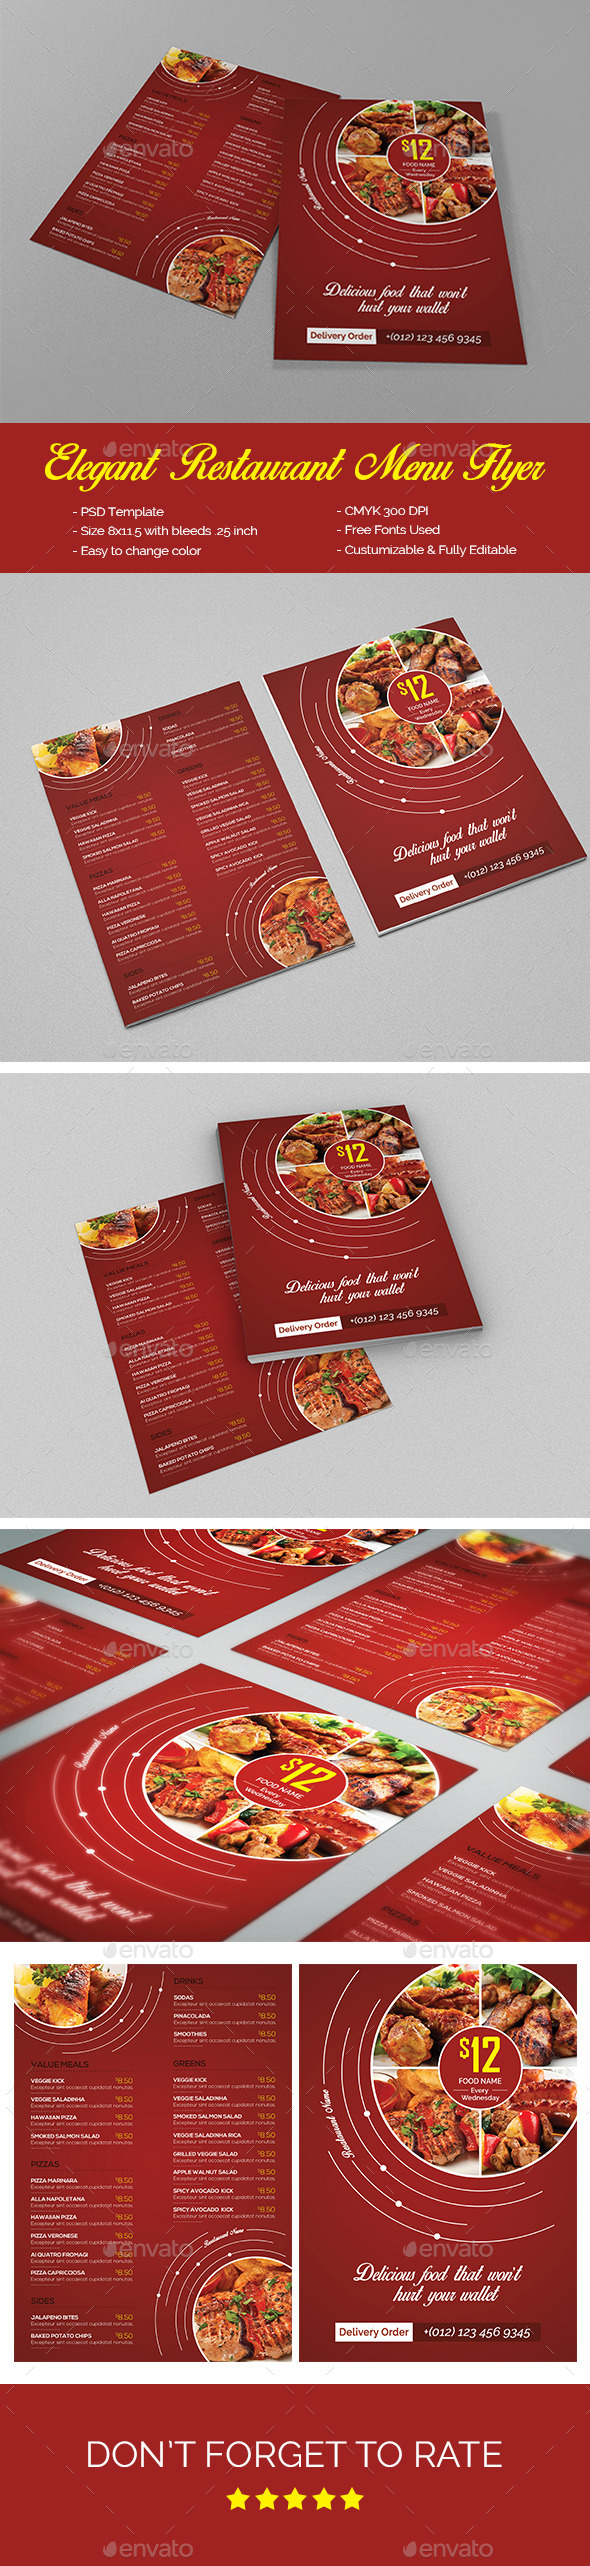 Elegant Restaurant Menu Flyer - Food Menus Print Templates